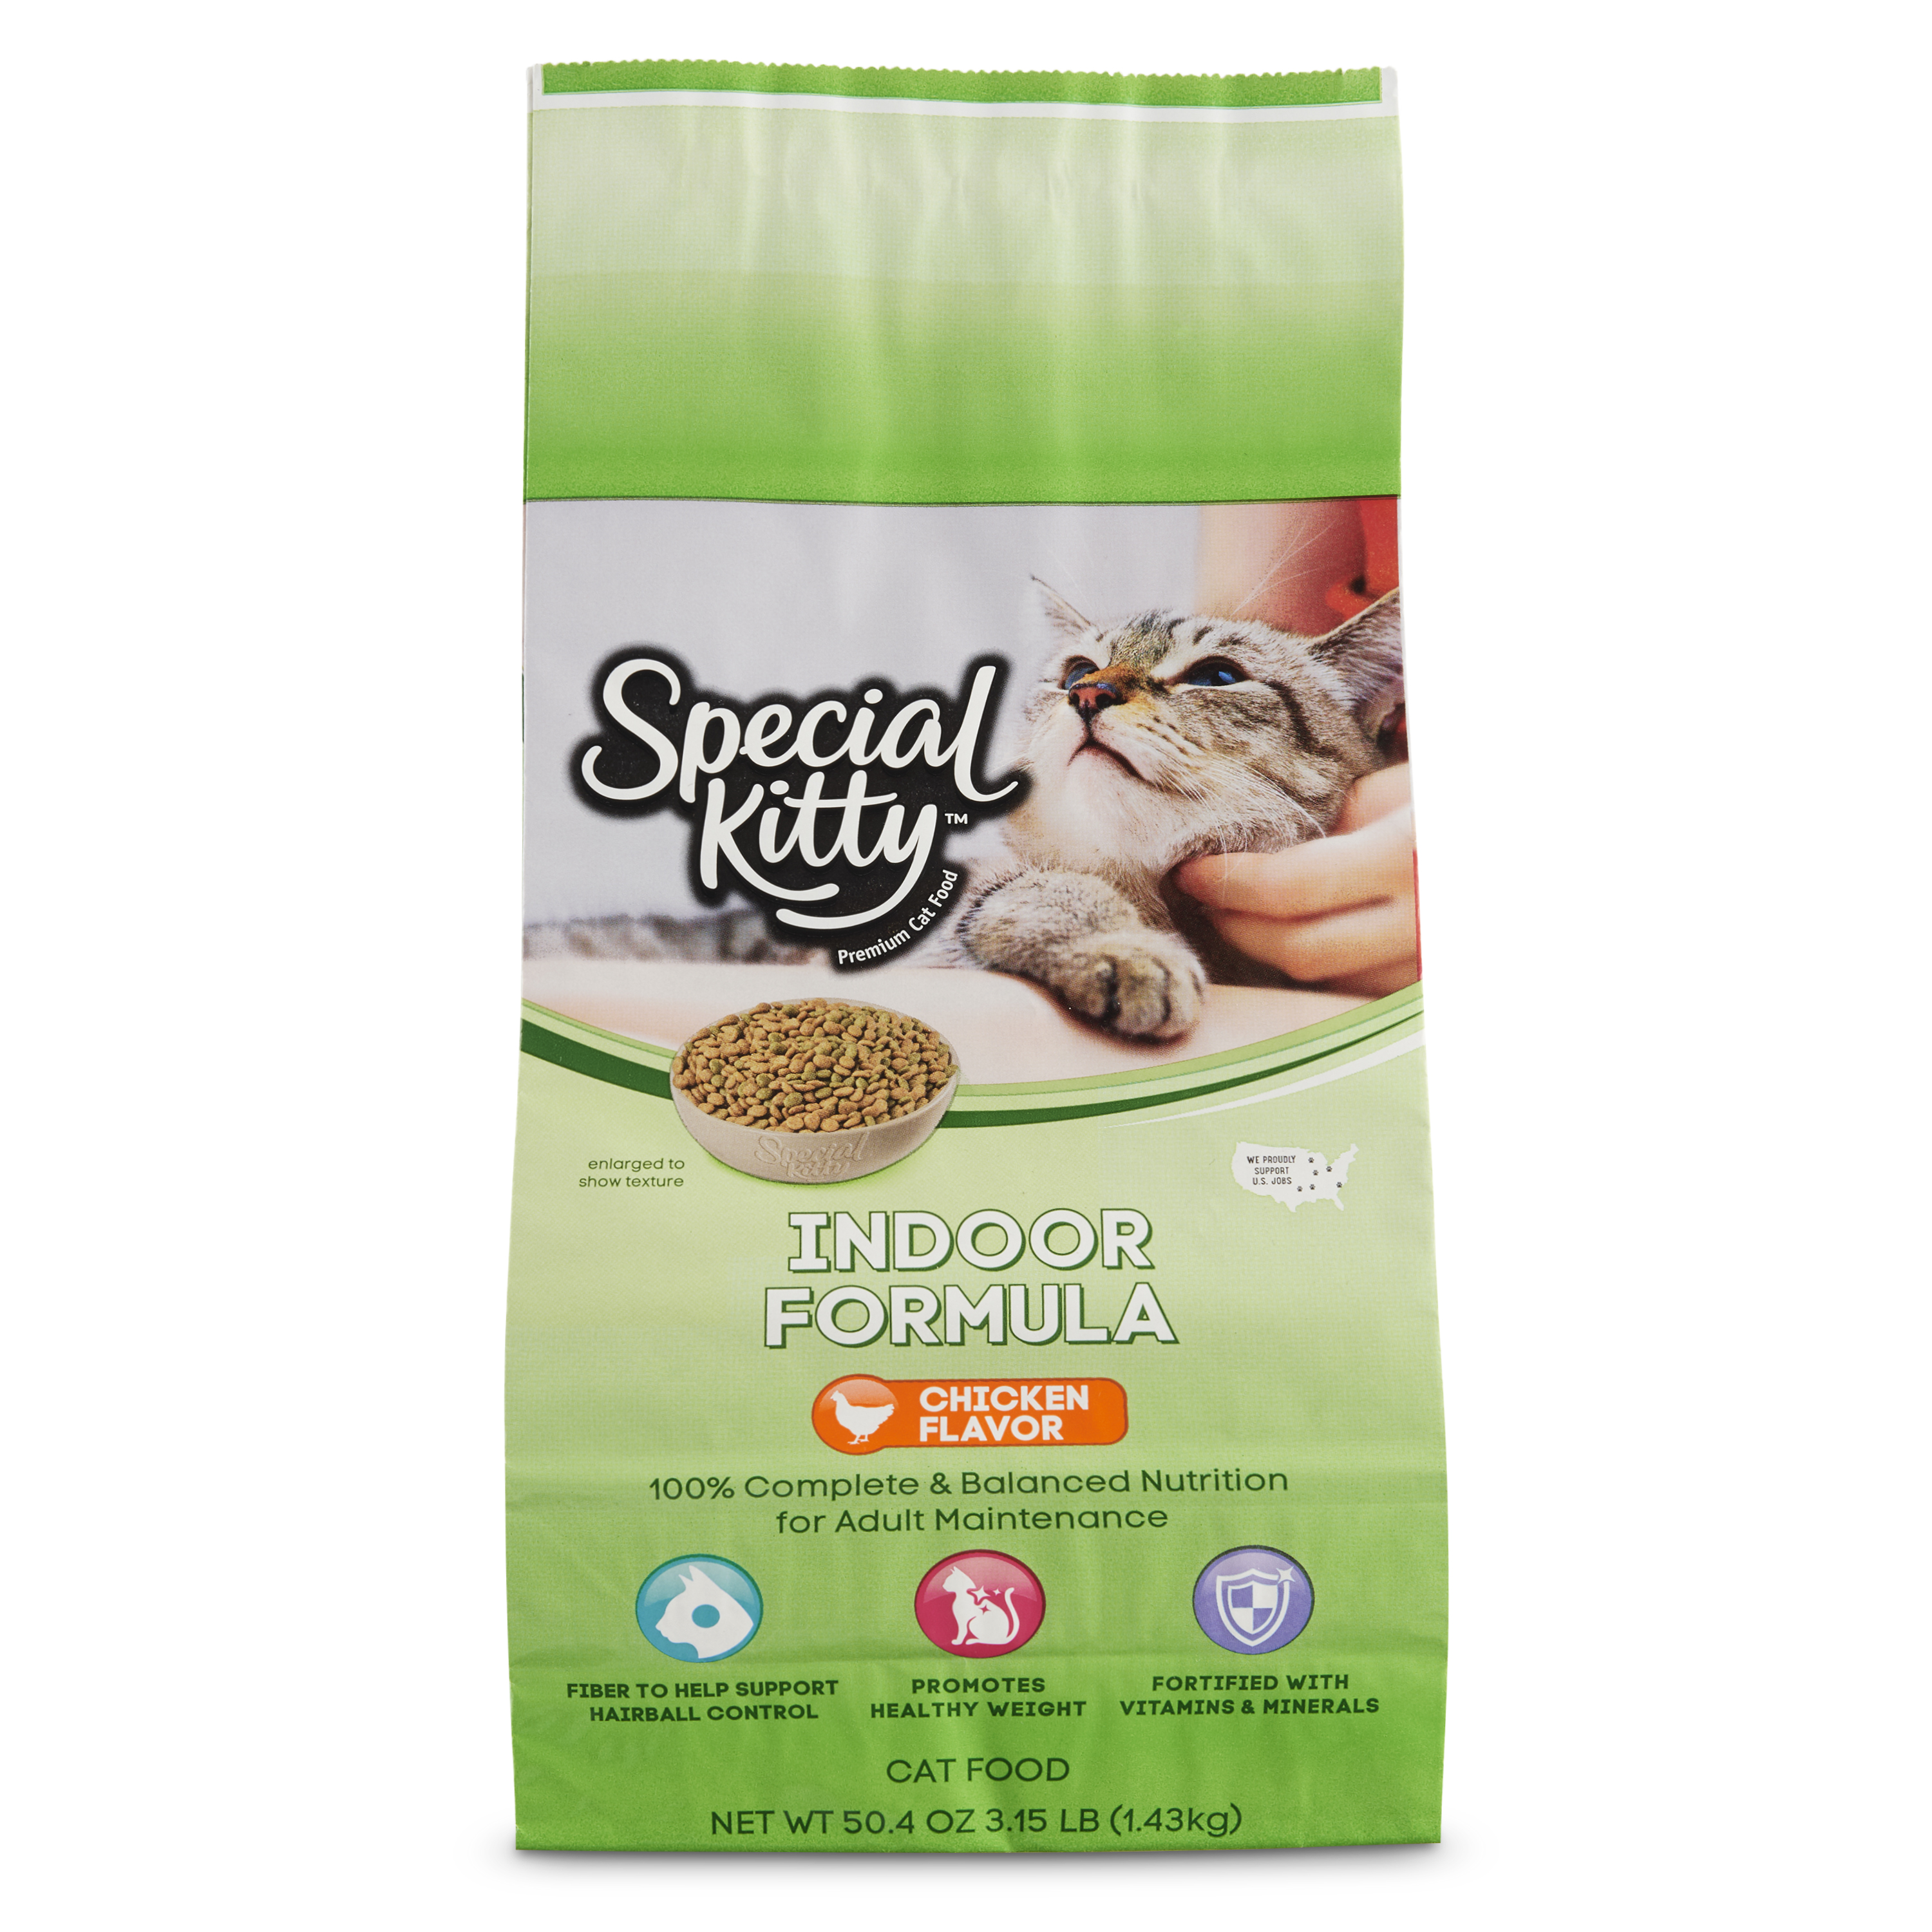 Special Kitty Indoor Formula with Chicken Dry Cat Food, 3.15 lb